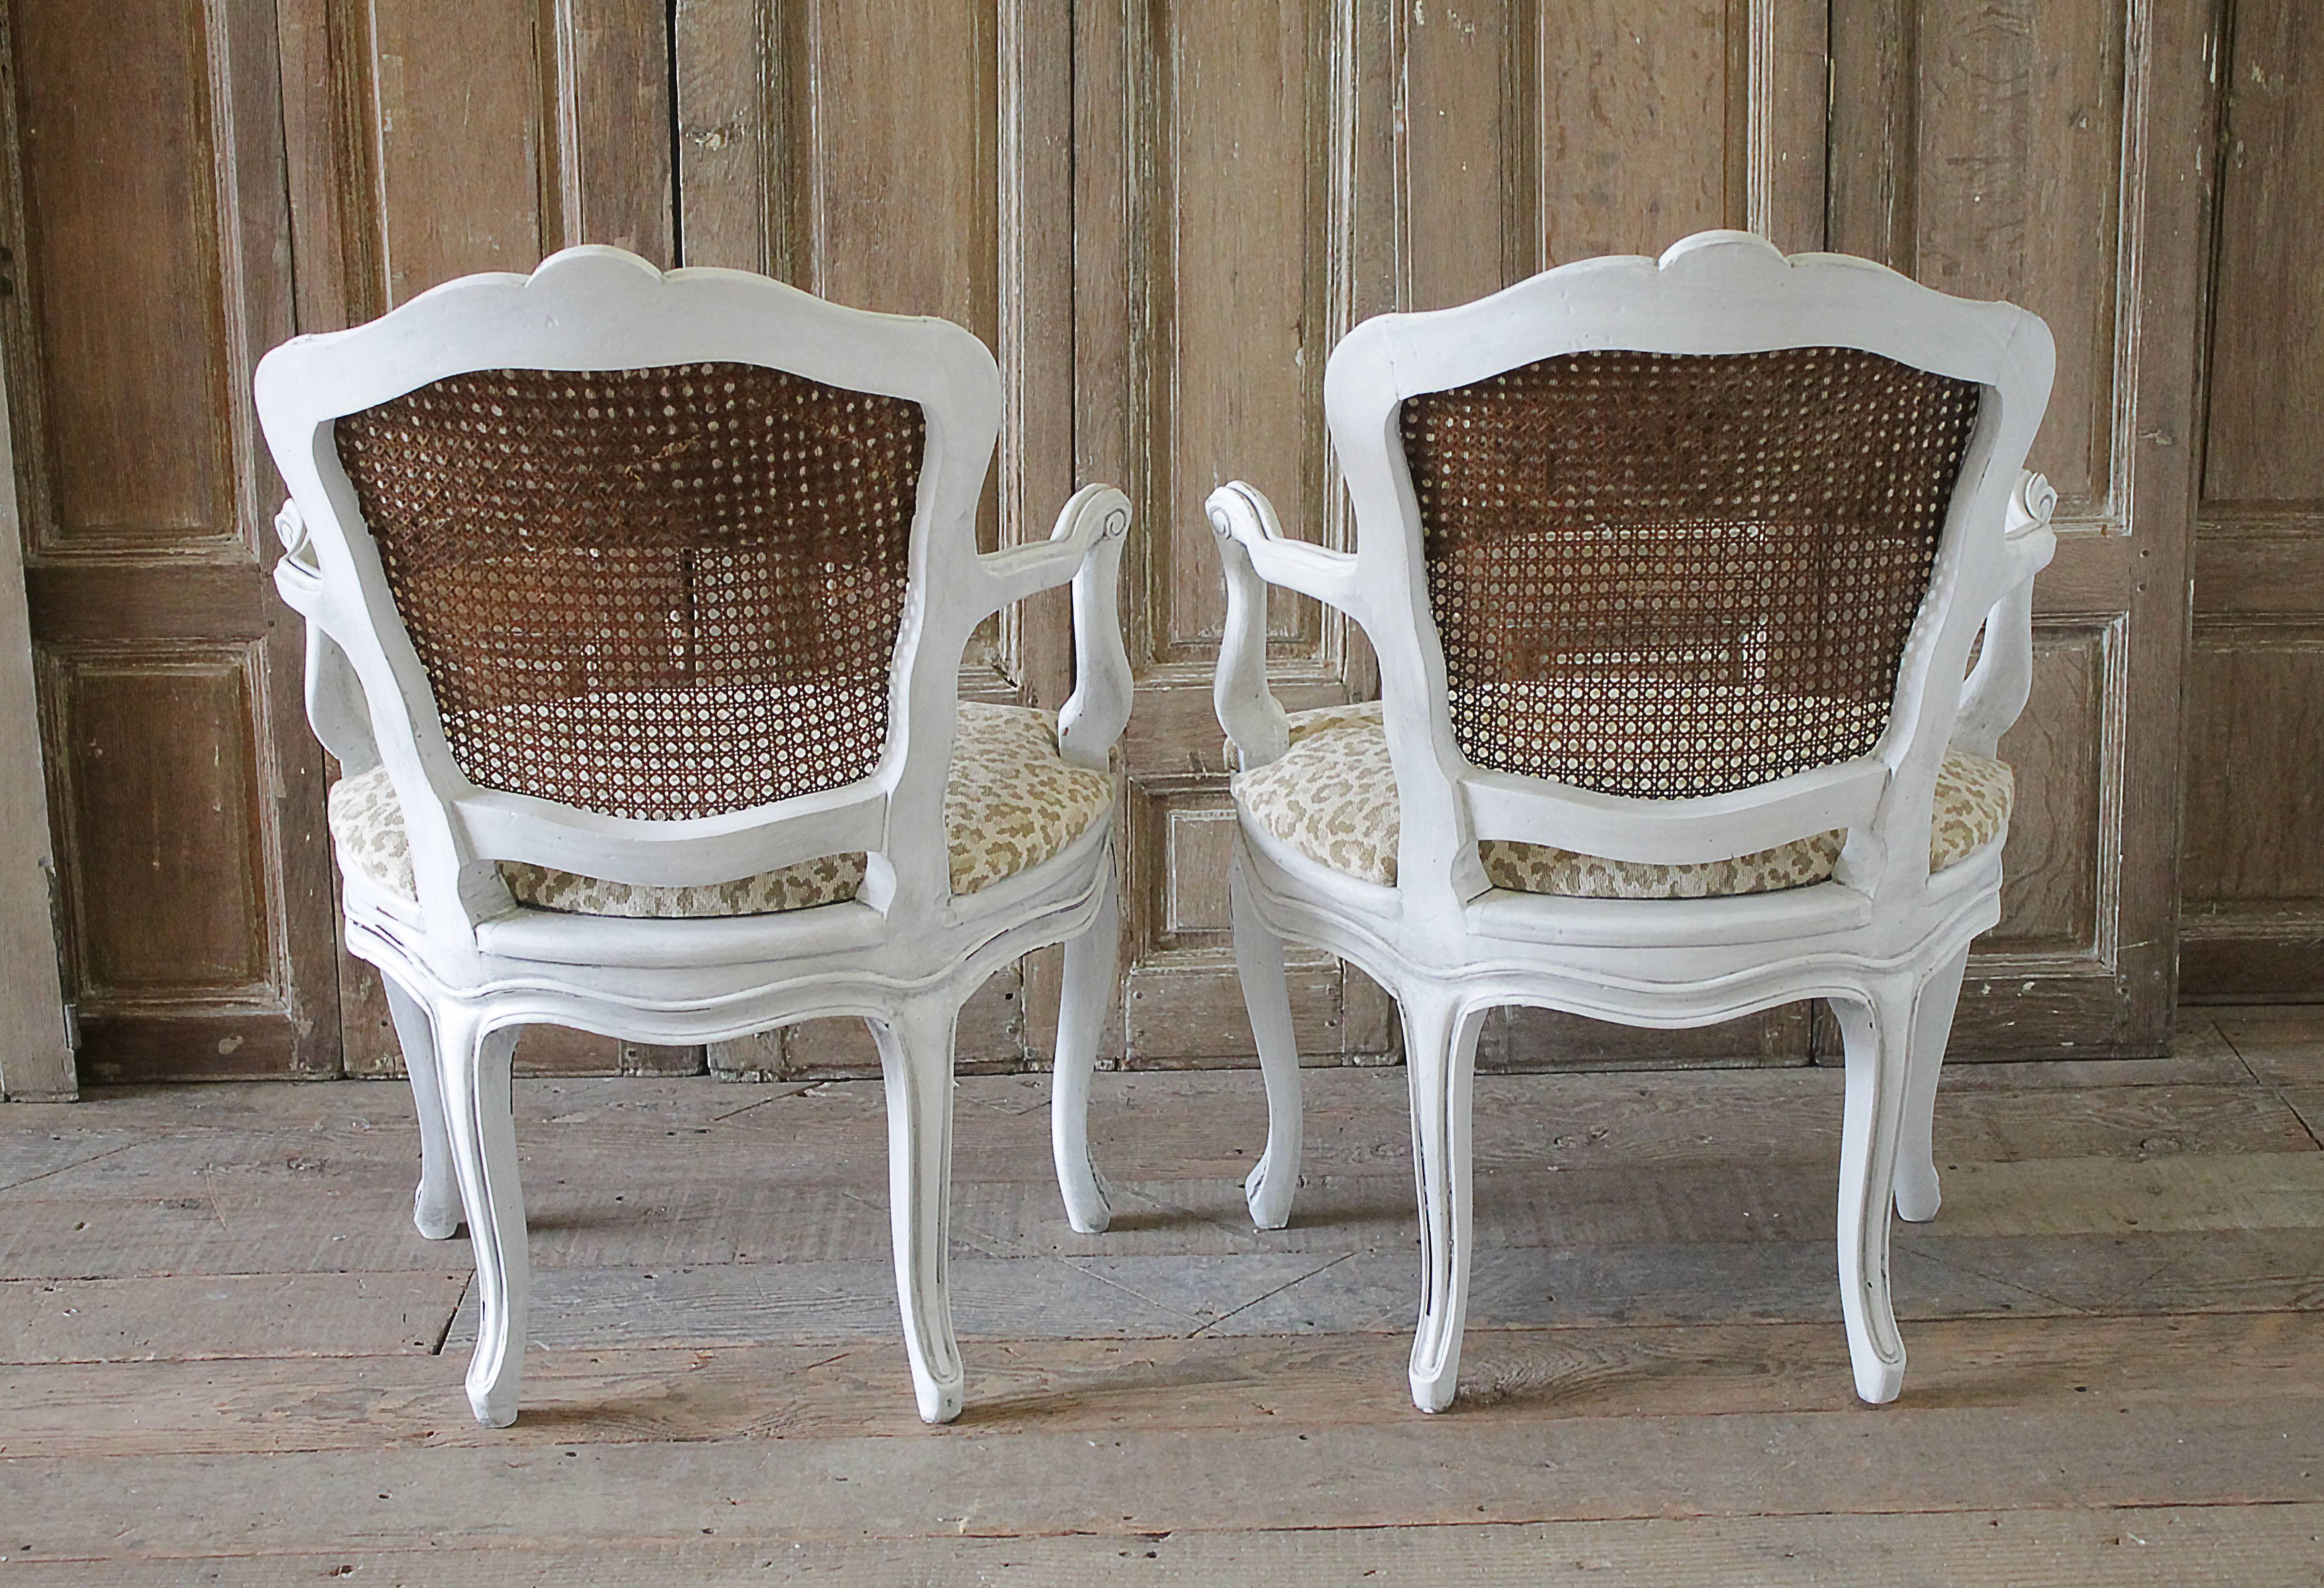 Pair of Antique Country French Cane Chairs with Leopard Upholstery For Sale 2 & Pair of Antique Country French Cane Chairs with Leopard Upholstery ...